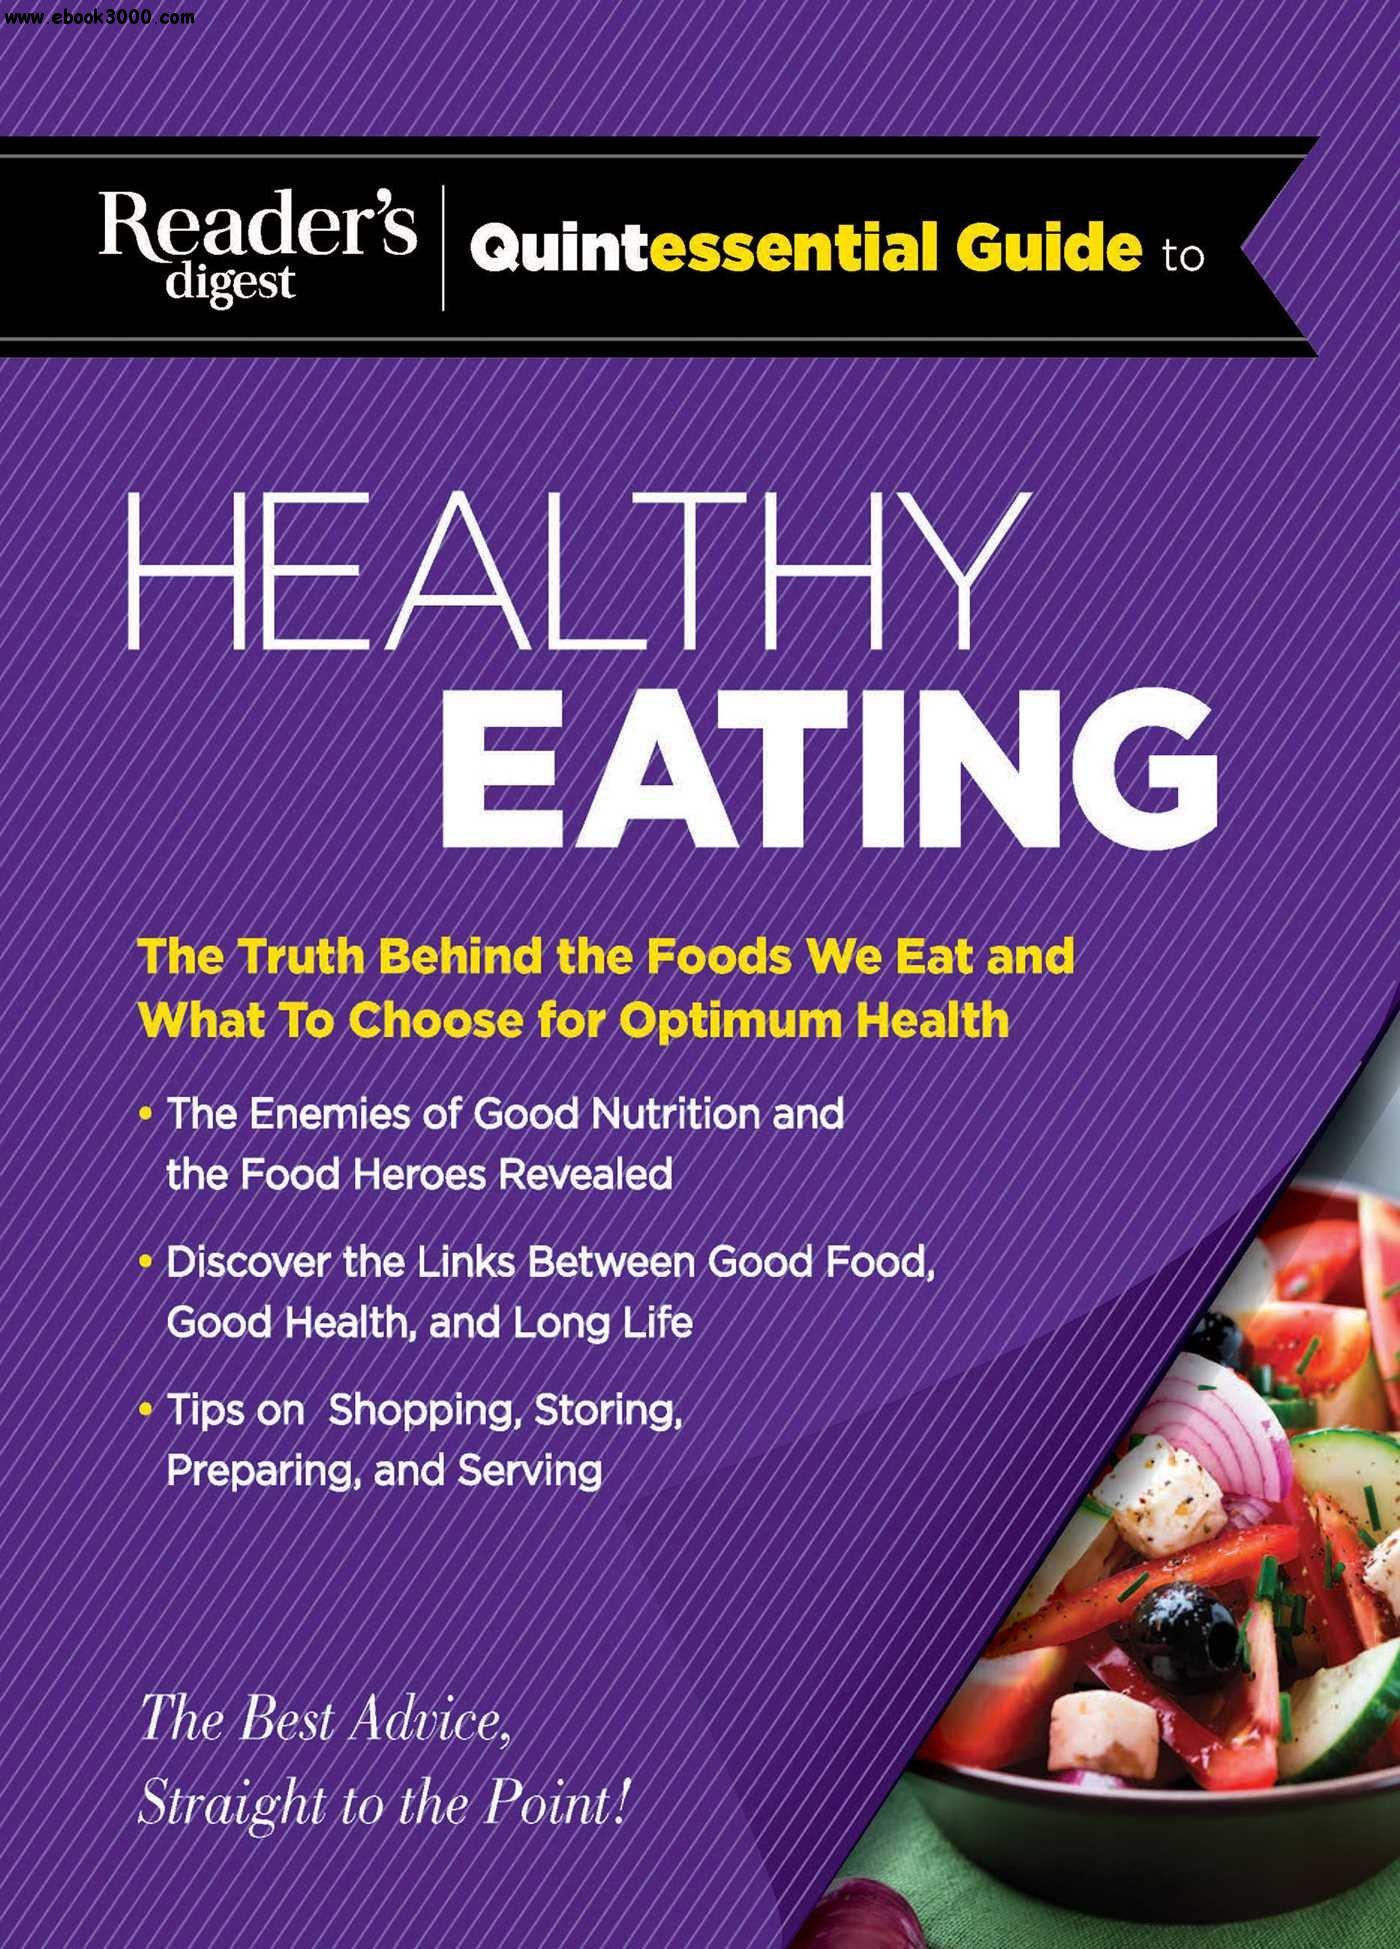 Reader's Digest Quintessential Guide to Healthy Eating free download